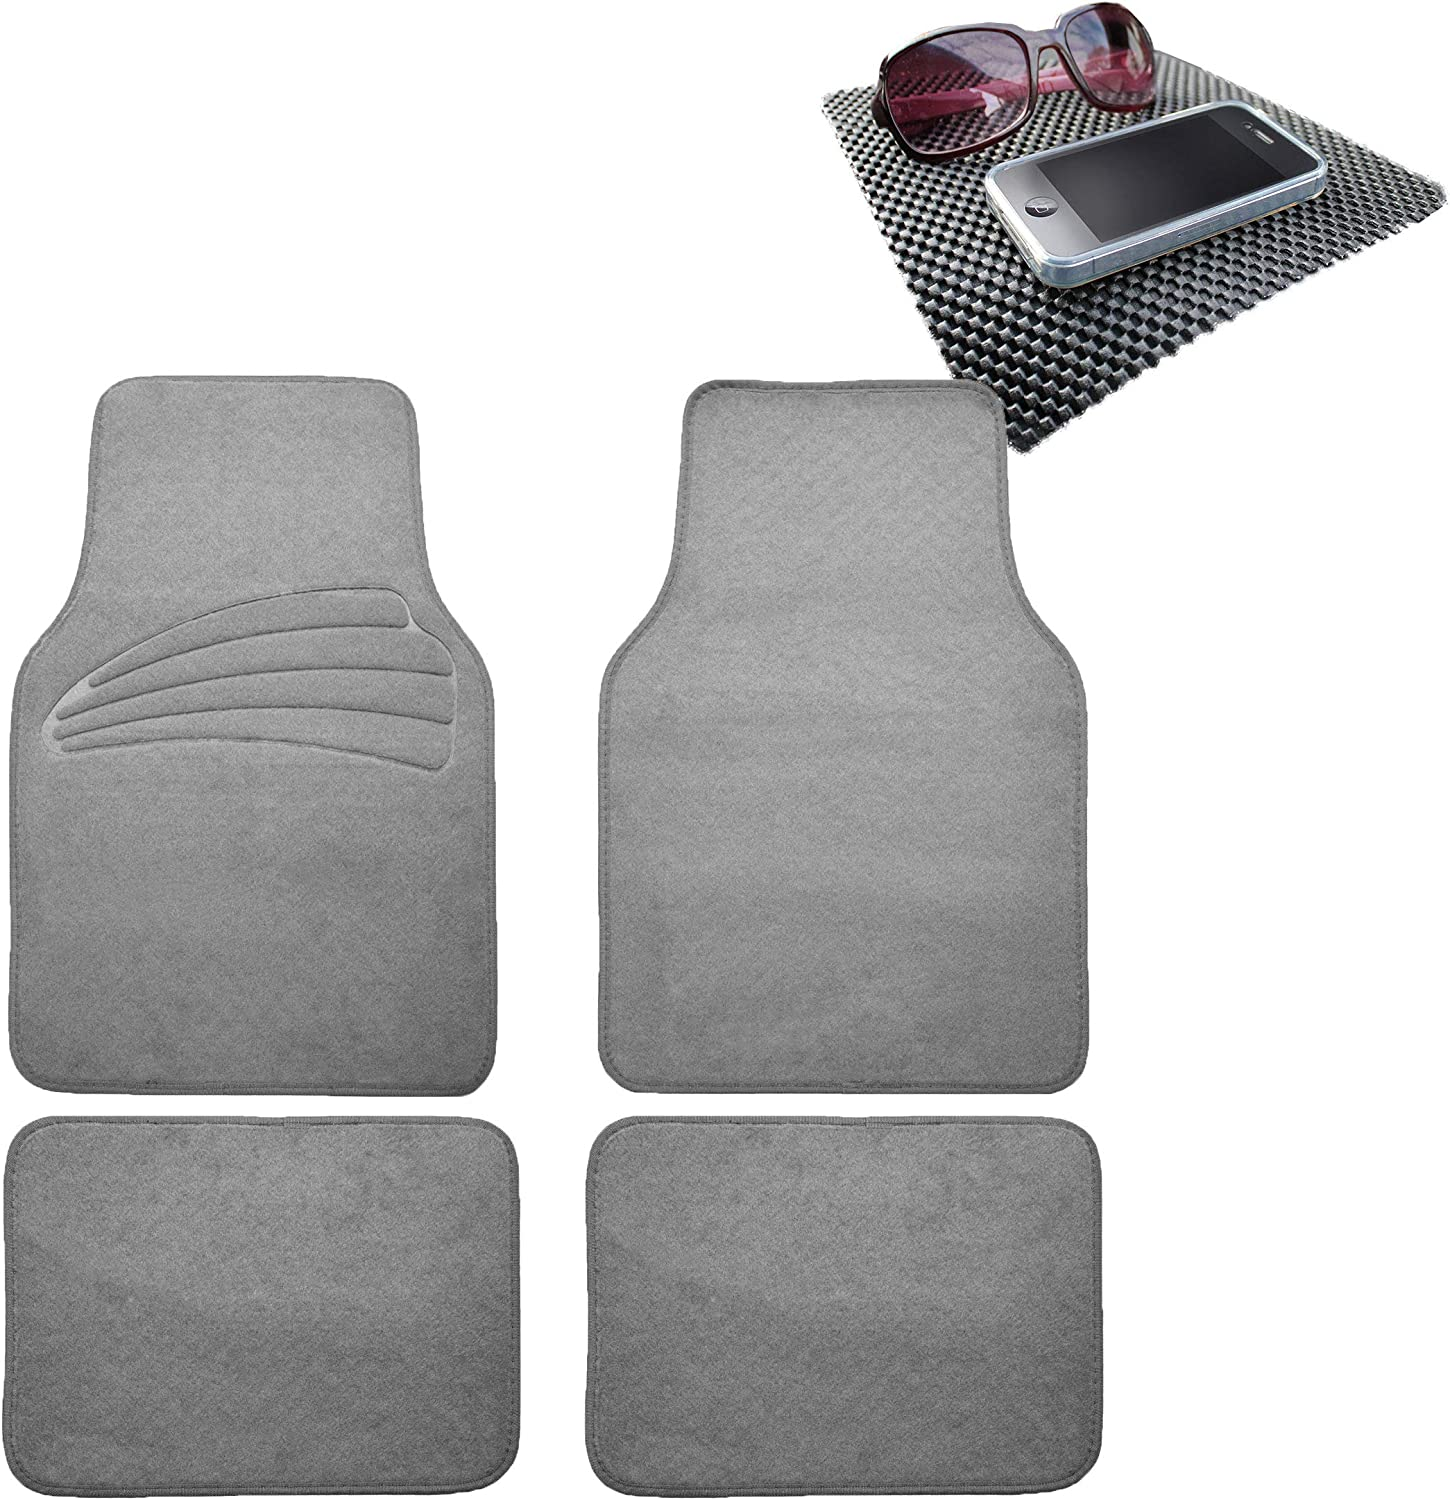 TLH Quality Cover Premium Carpet Car Floor Mats Univesal Fit with Heel Pad, Gray Color w/Black Dash Pad